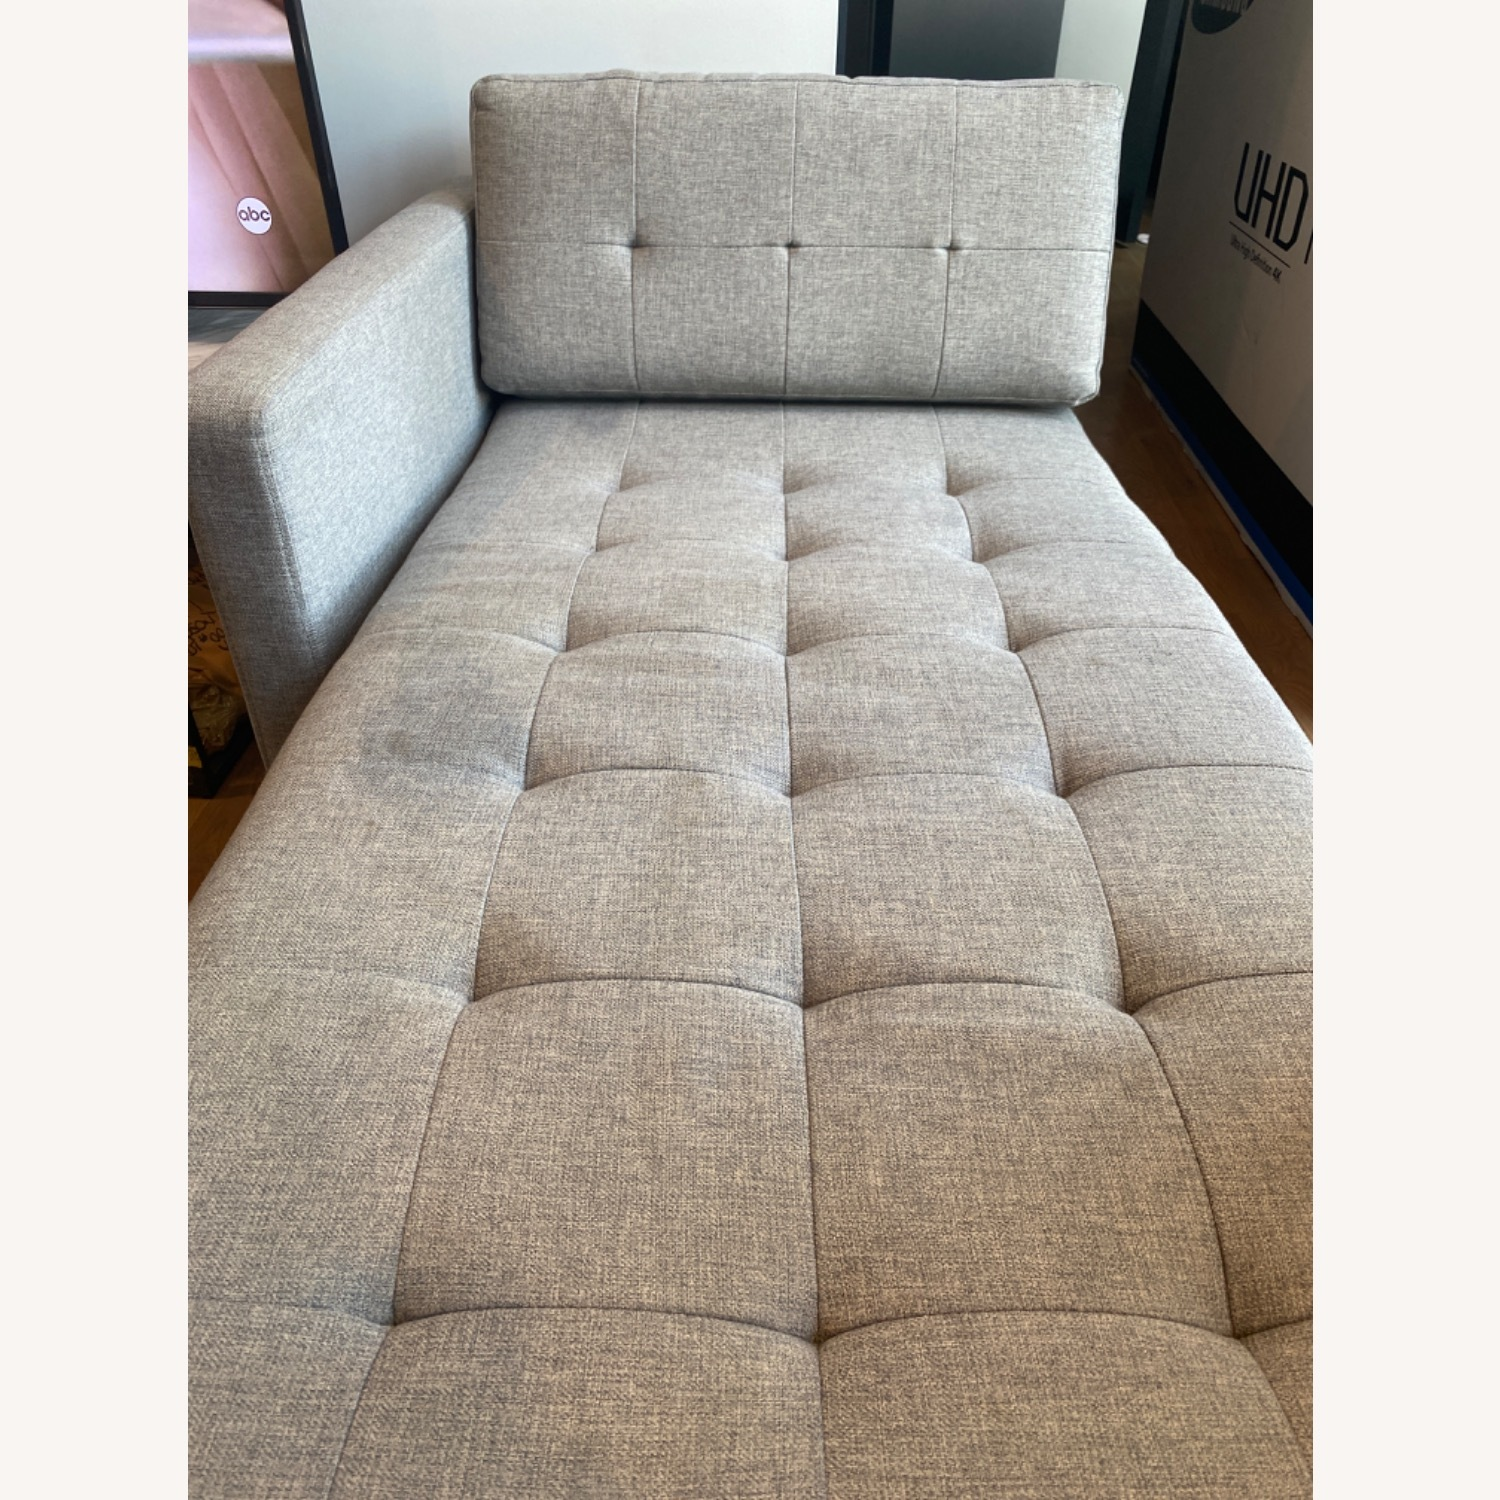 CB2 Holden Grey Chaise Lounge - image-3